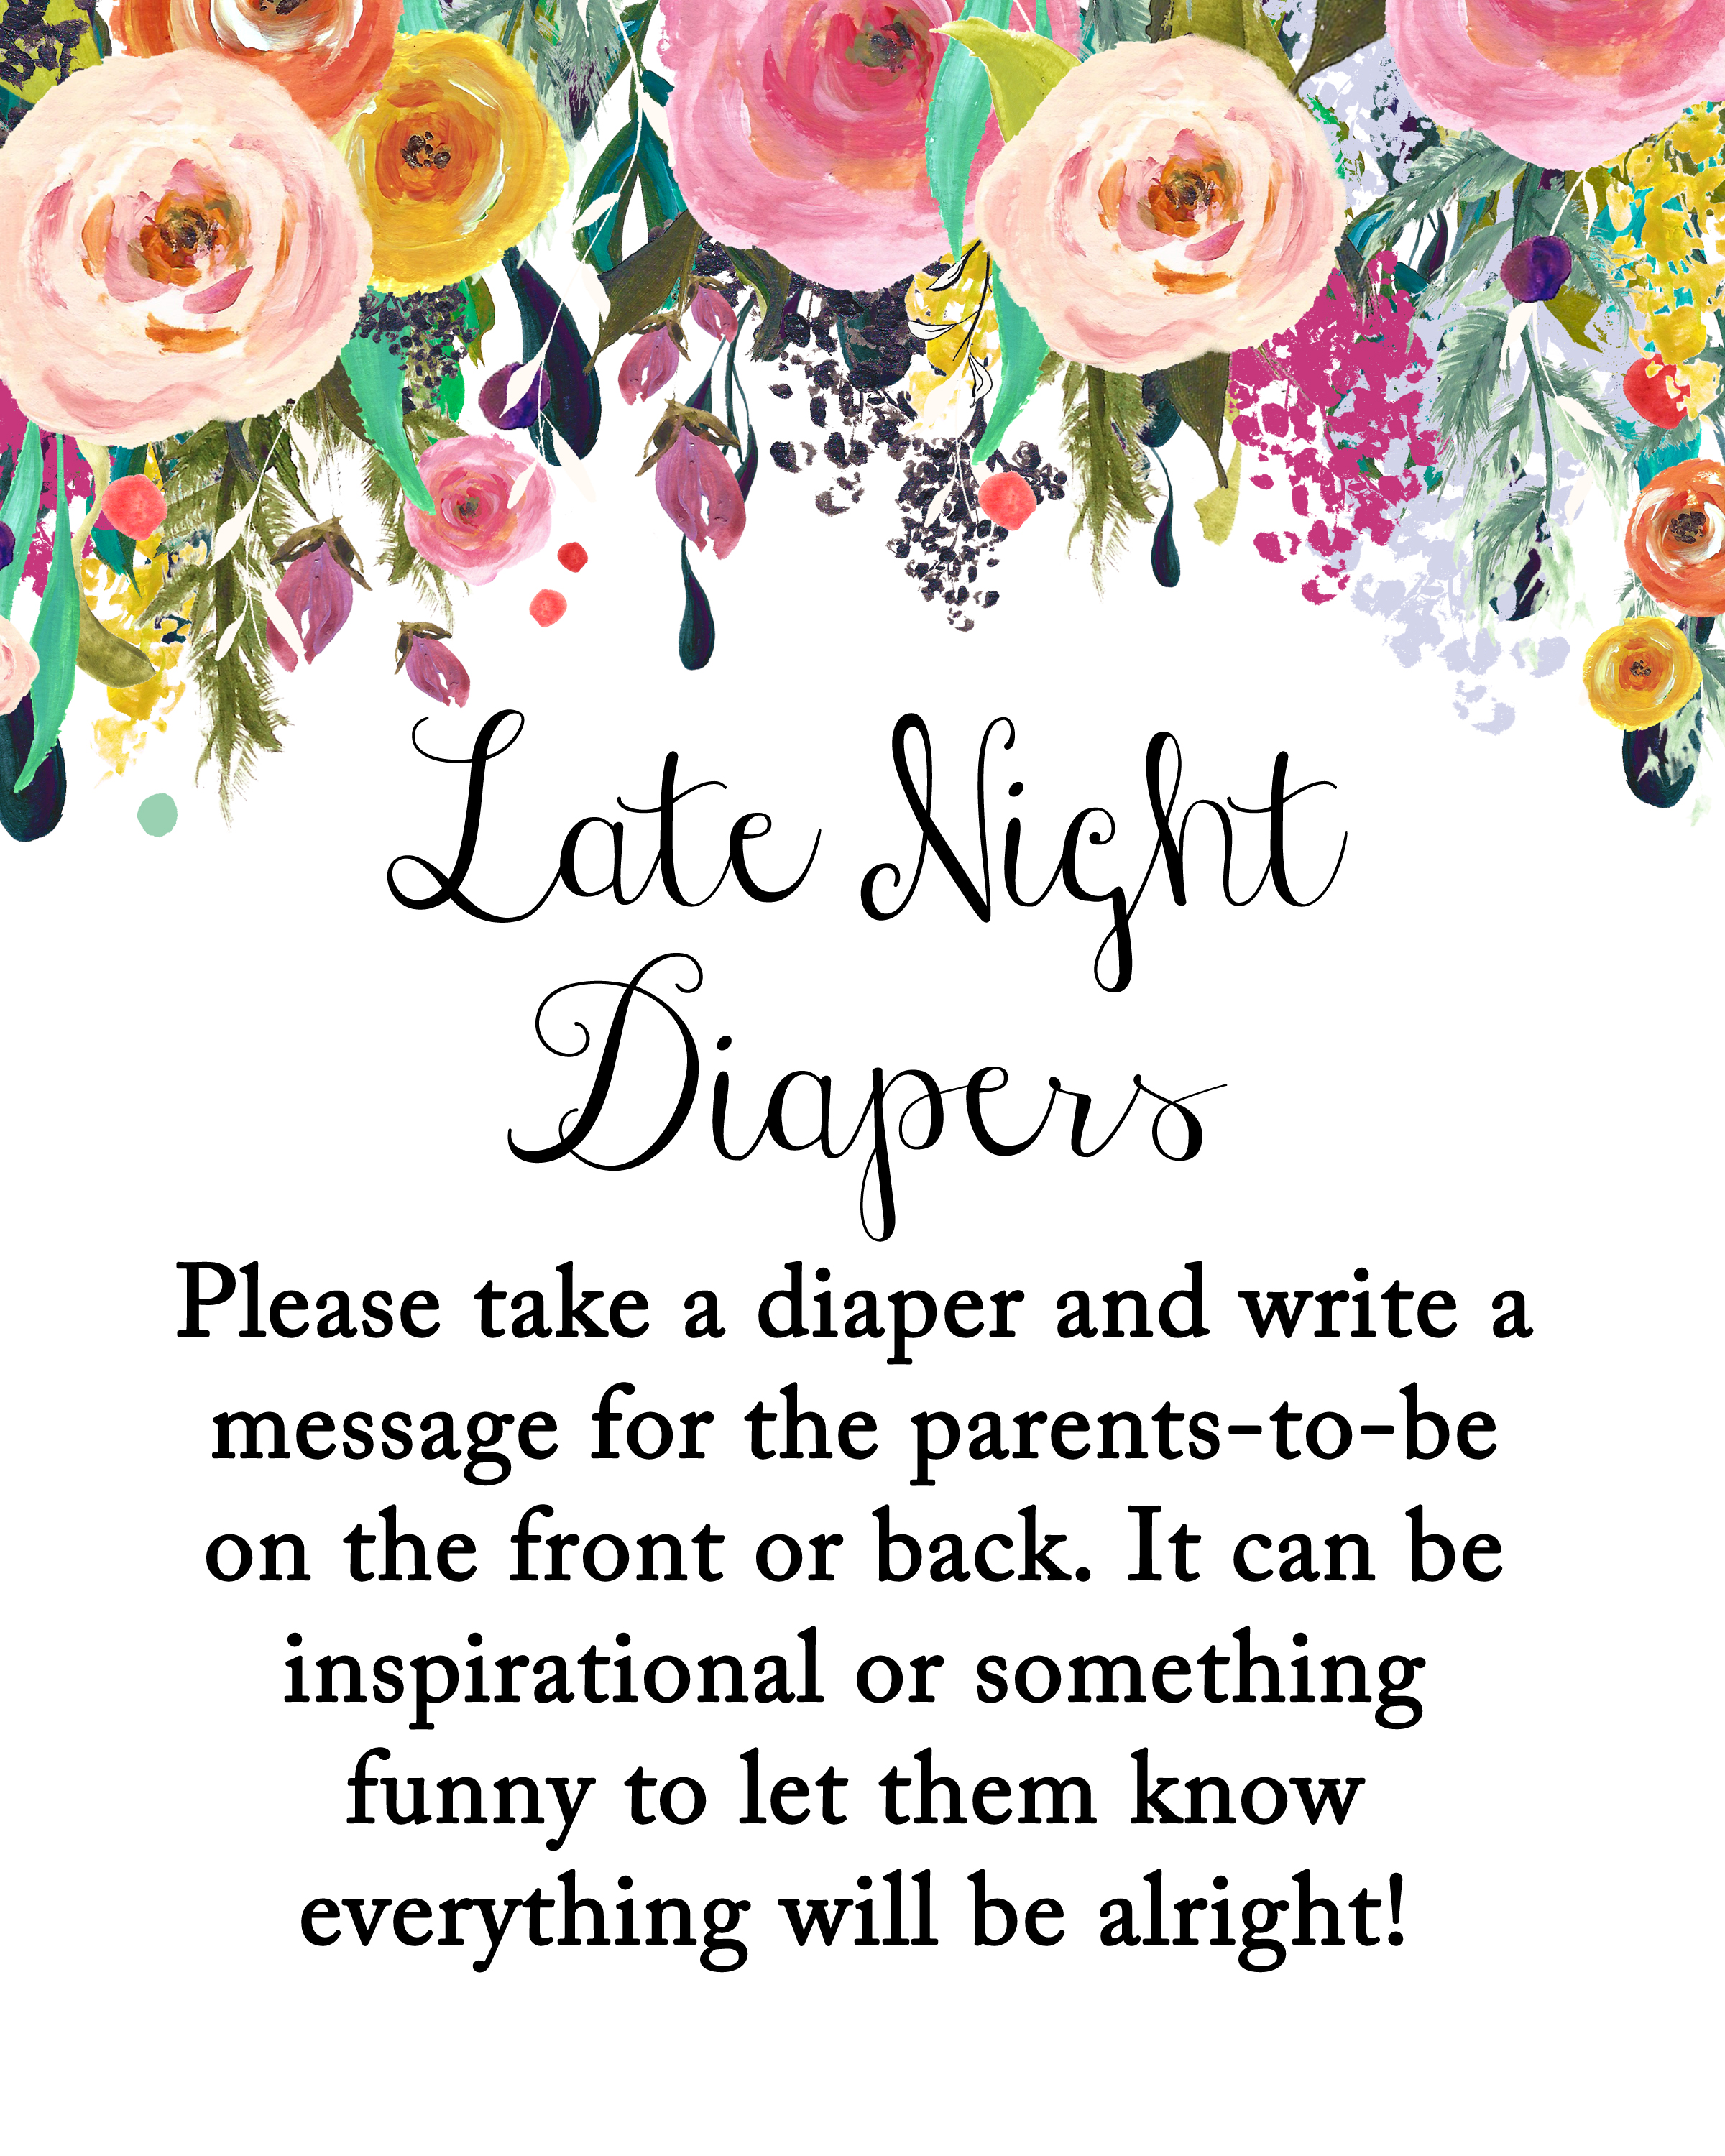 graphic relating to Late Night Diapers Printable known as late-evening-diapers-8x10 - Magical Printable